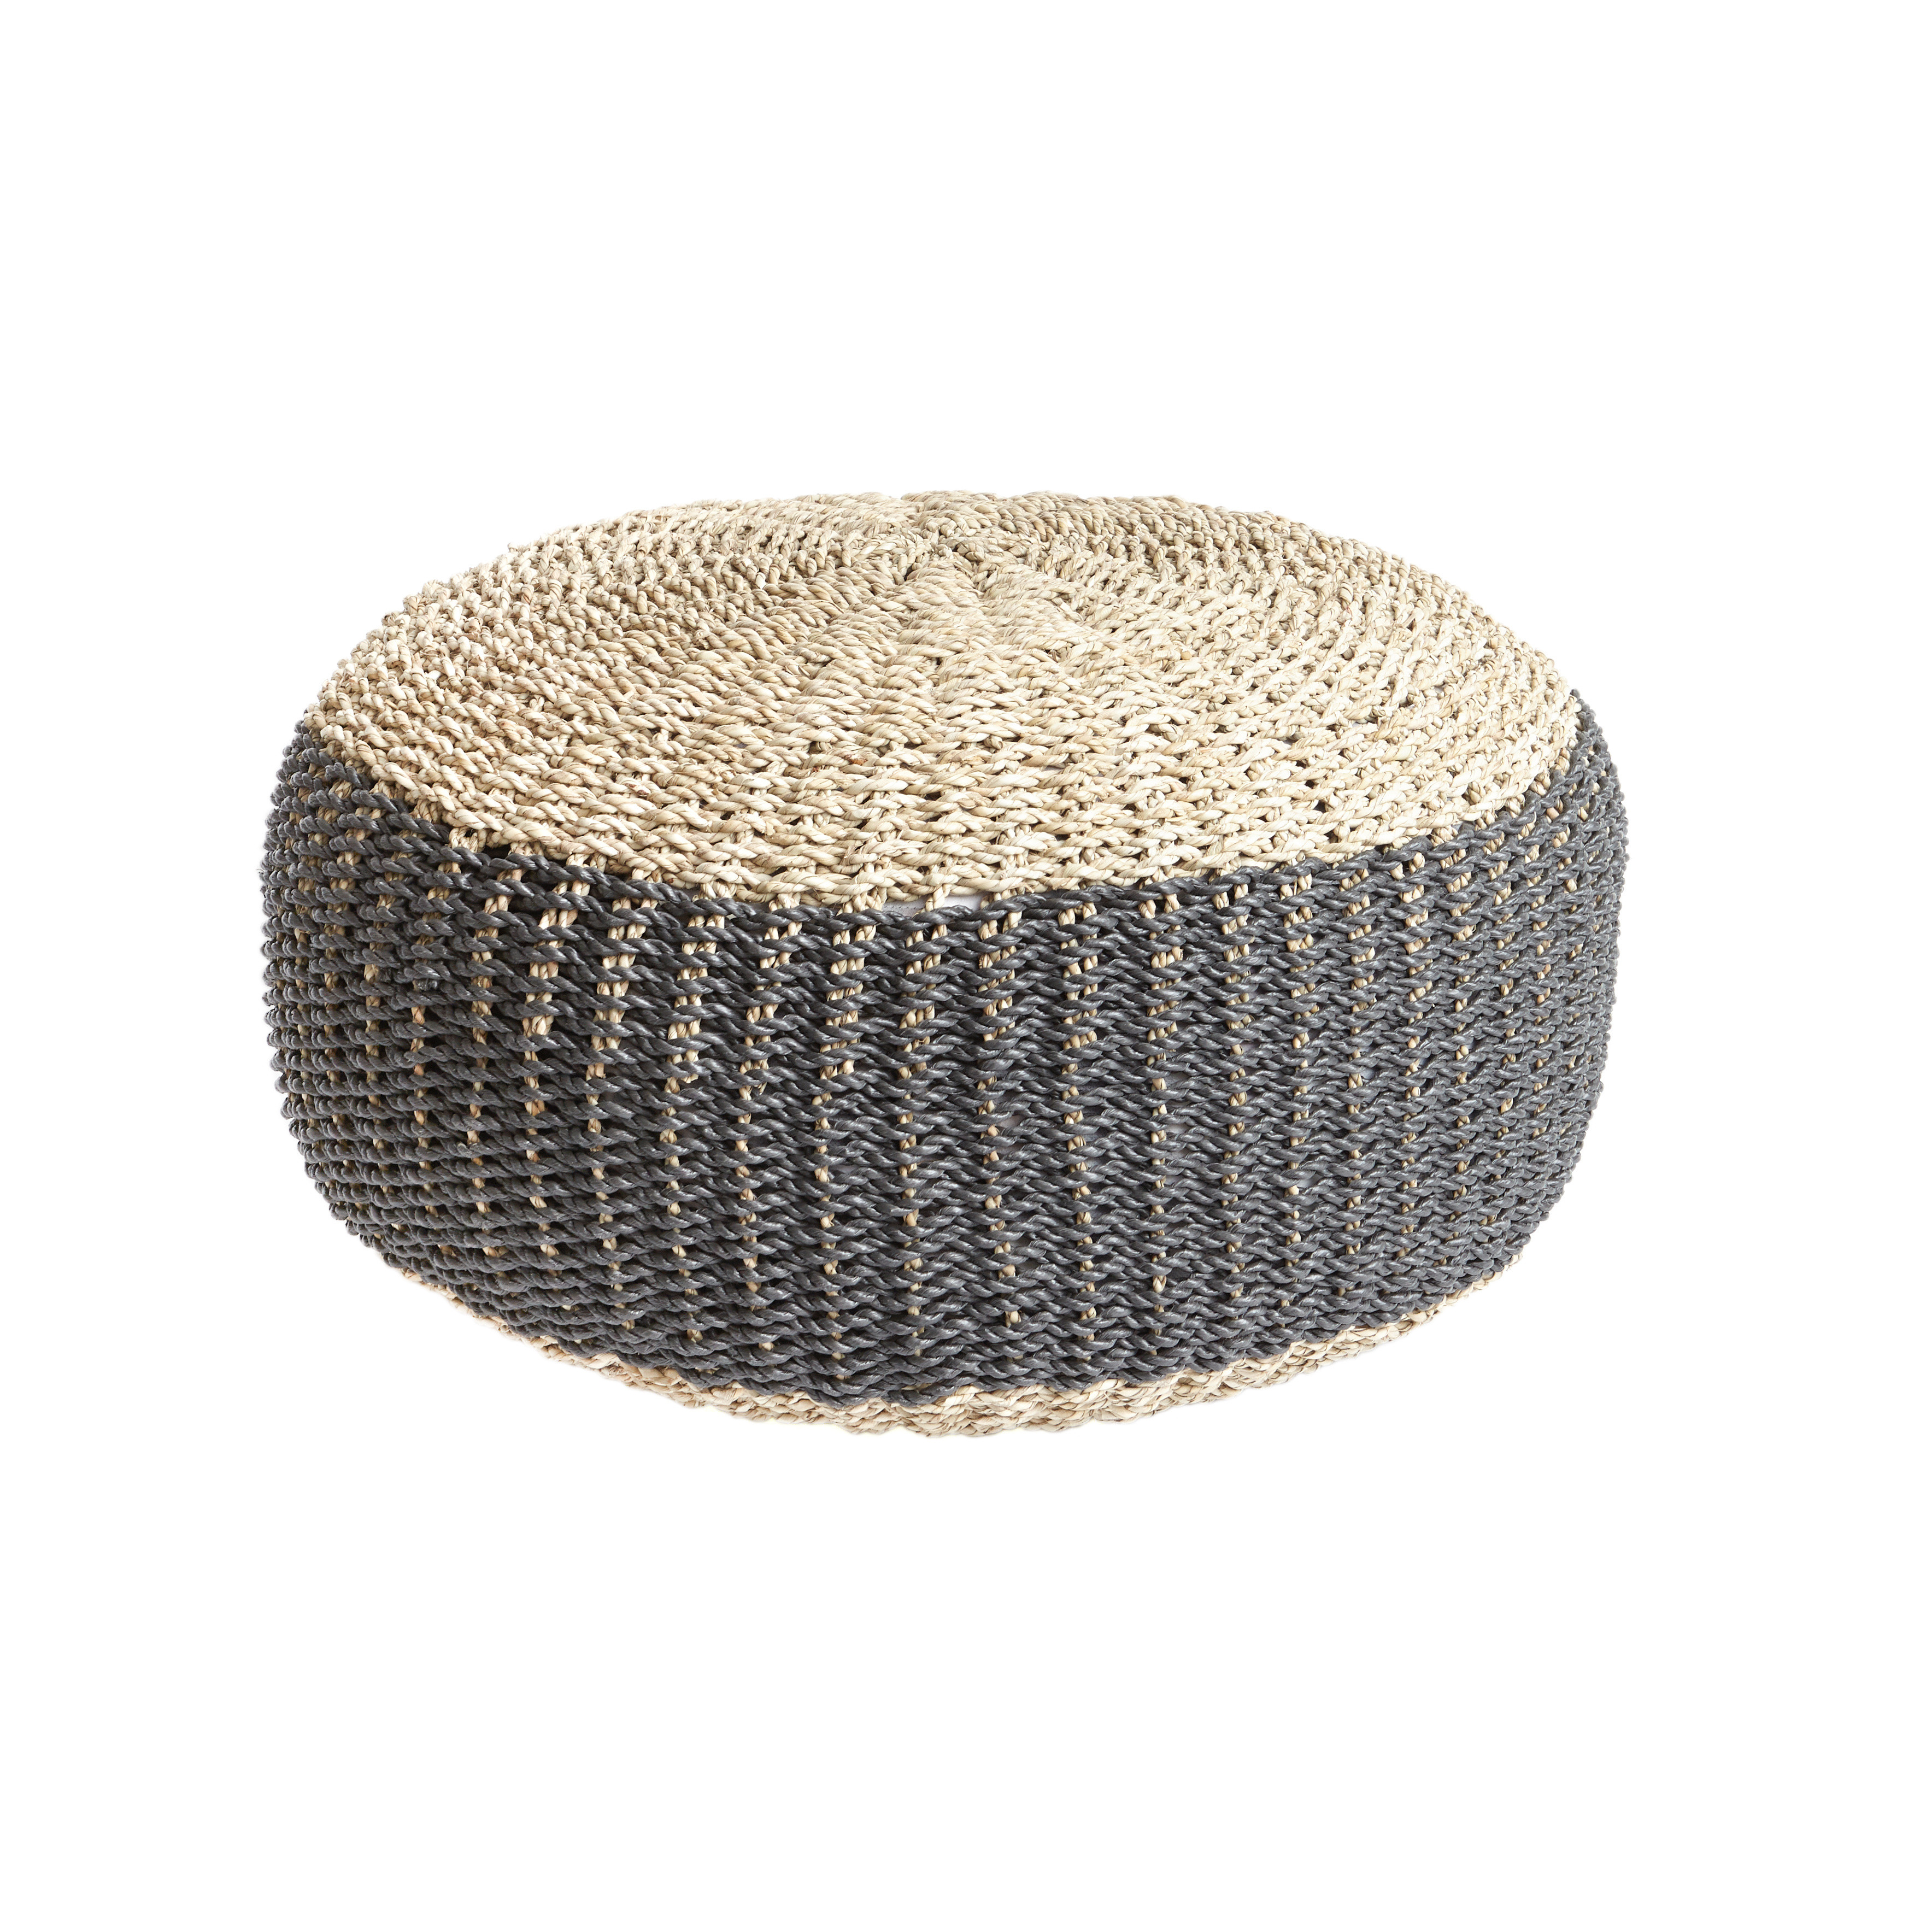 Pouf in seagrass Freya, Beige, large image number 0